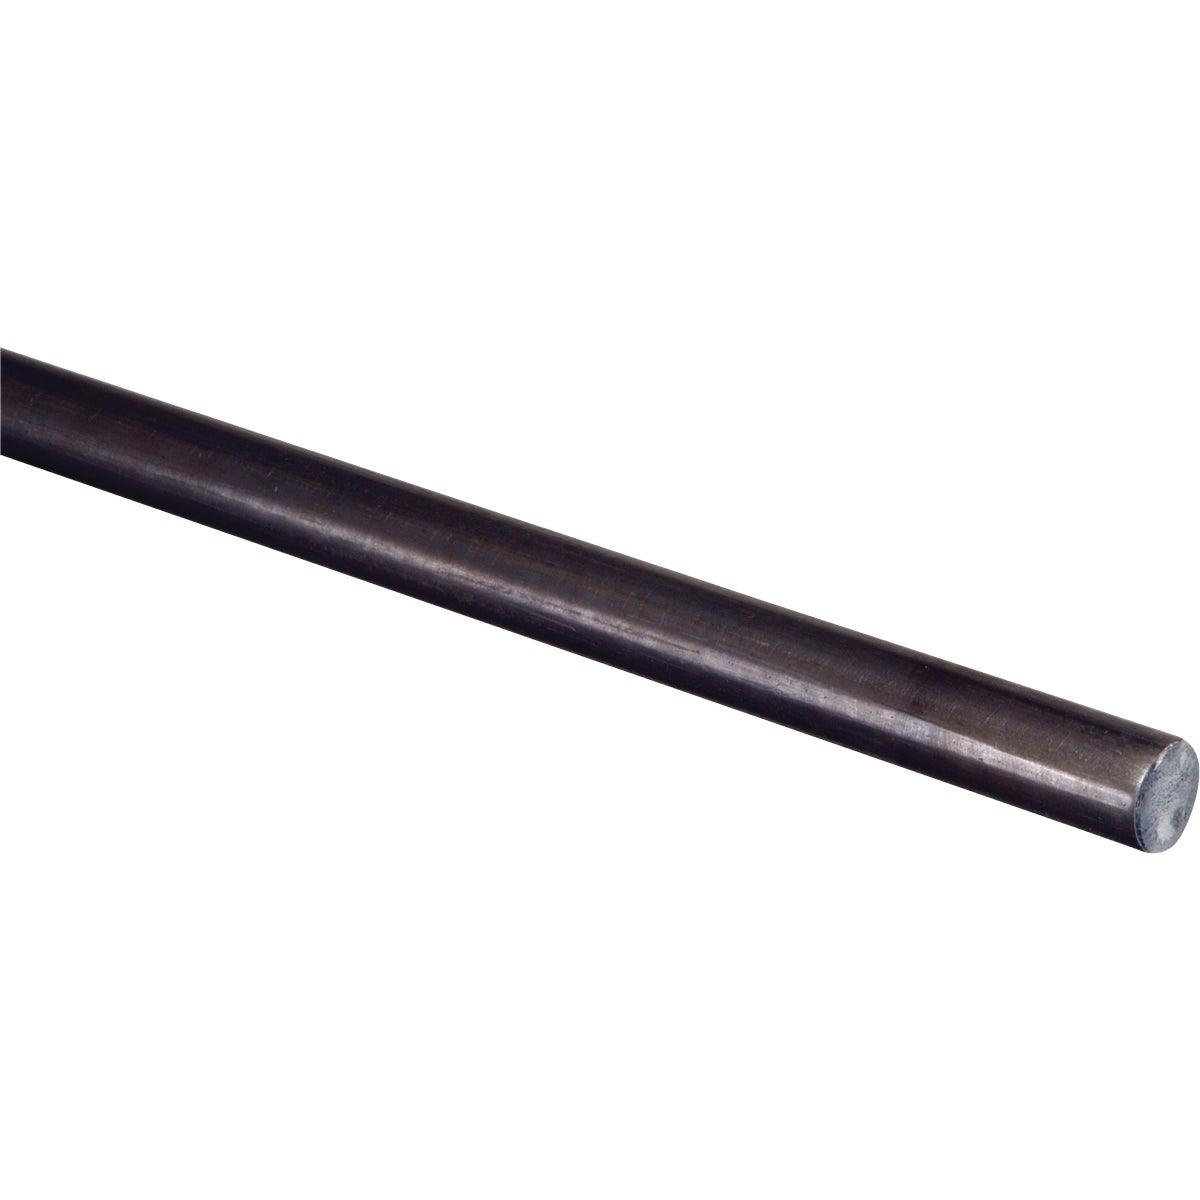 1/4X6' CR RND STEEL ROD - N215327 by National Mfg Co